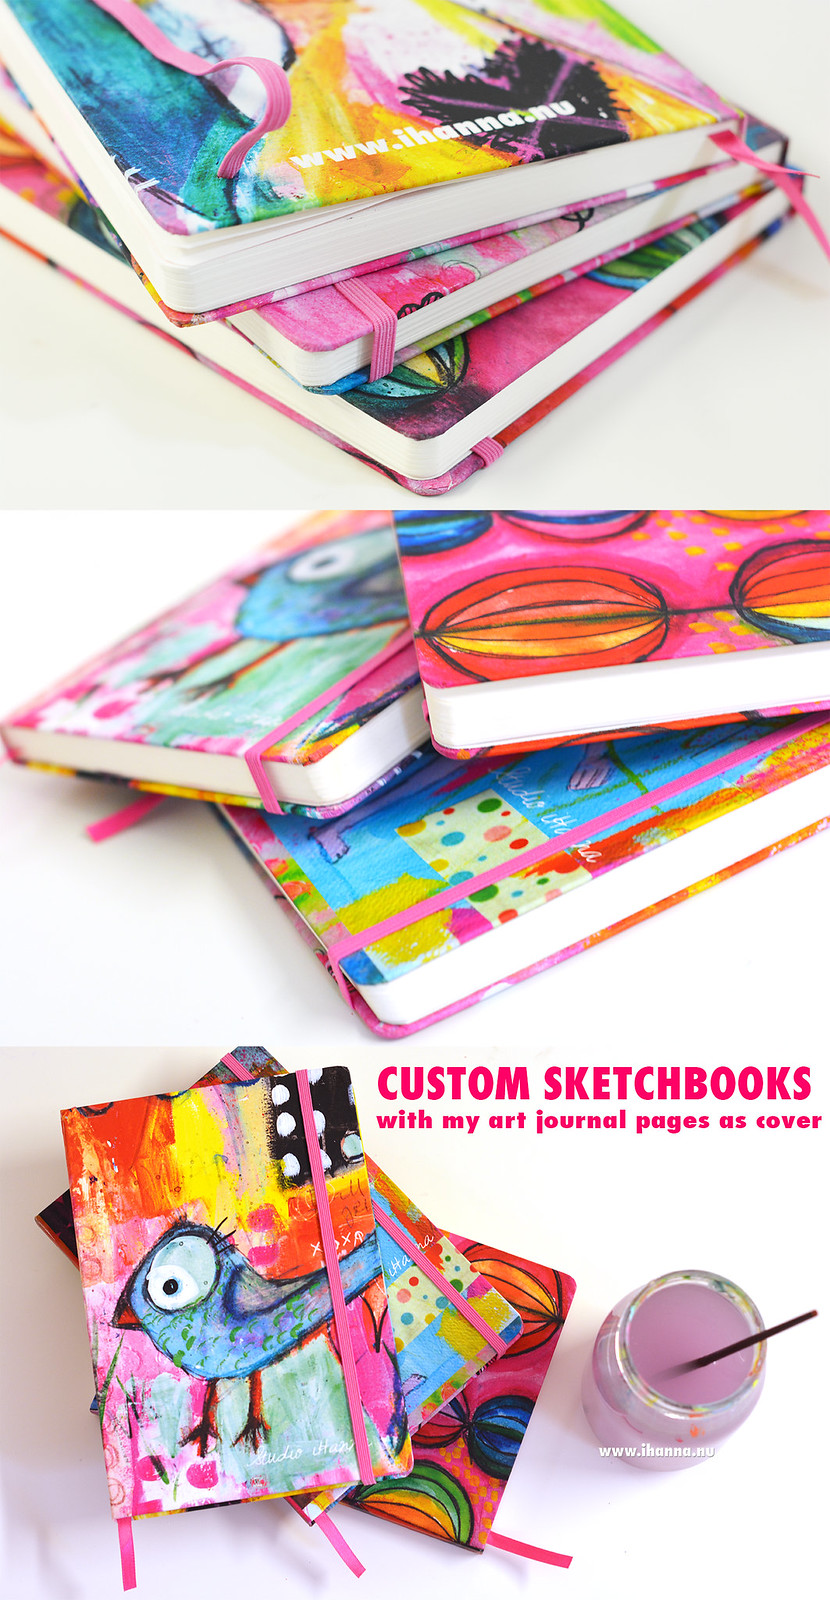 Custom Sketchbooks with cover from iHanna's Art Journal Pages